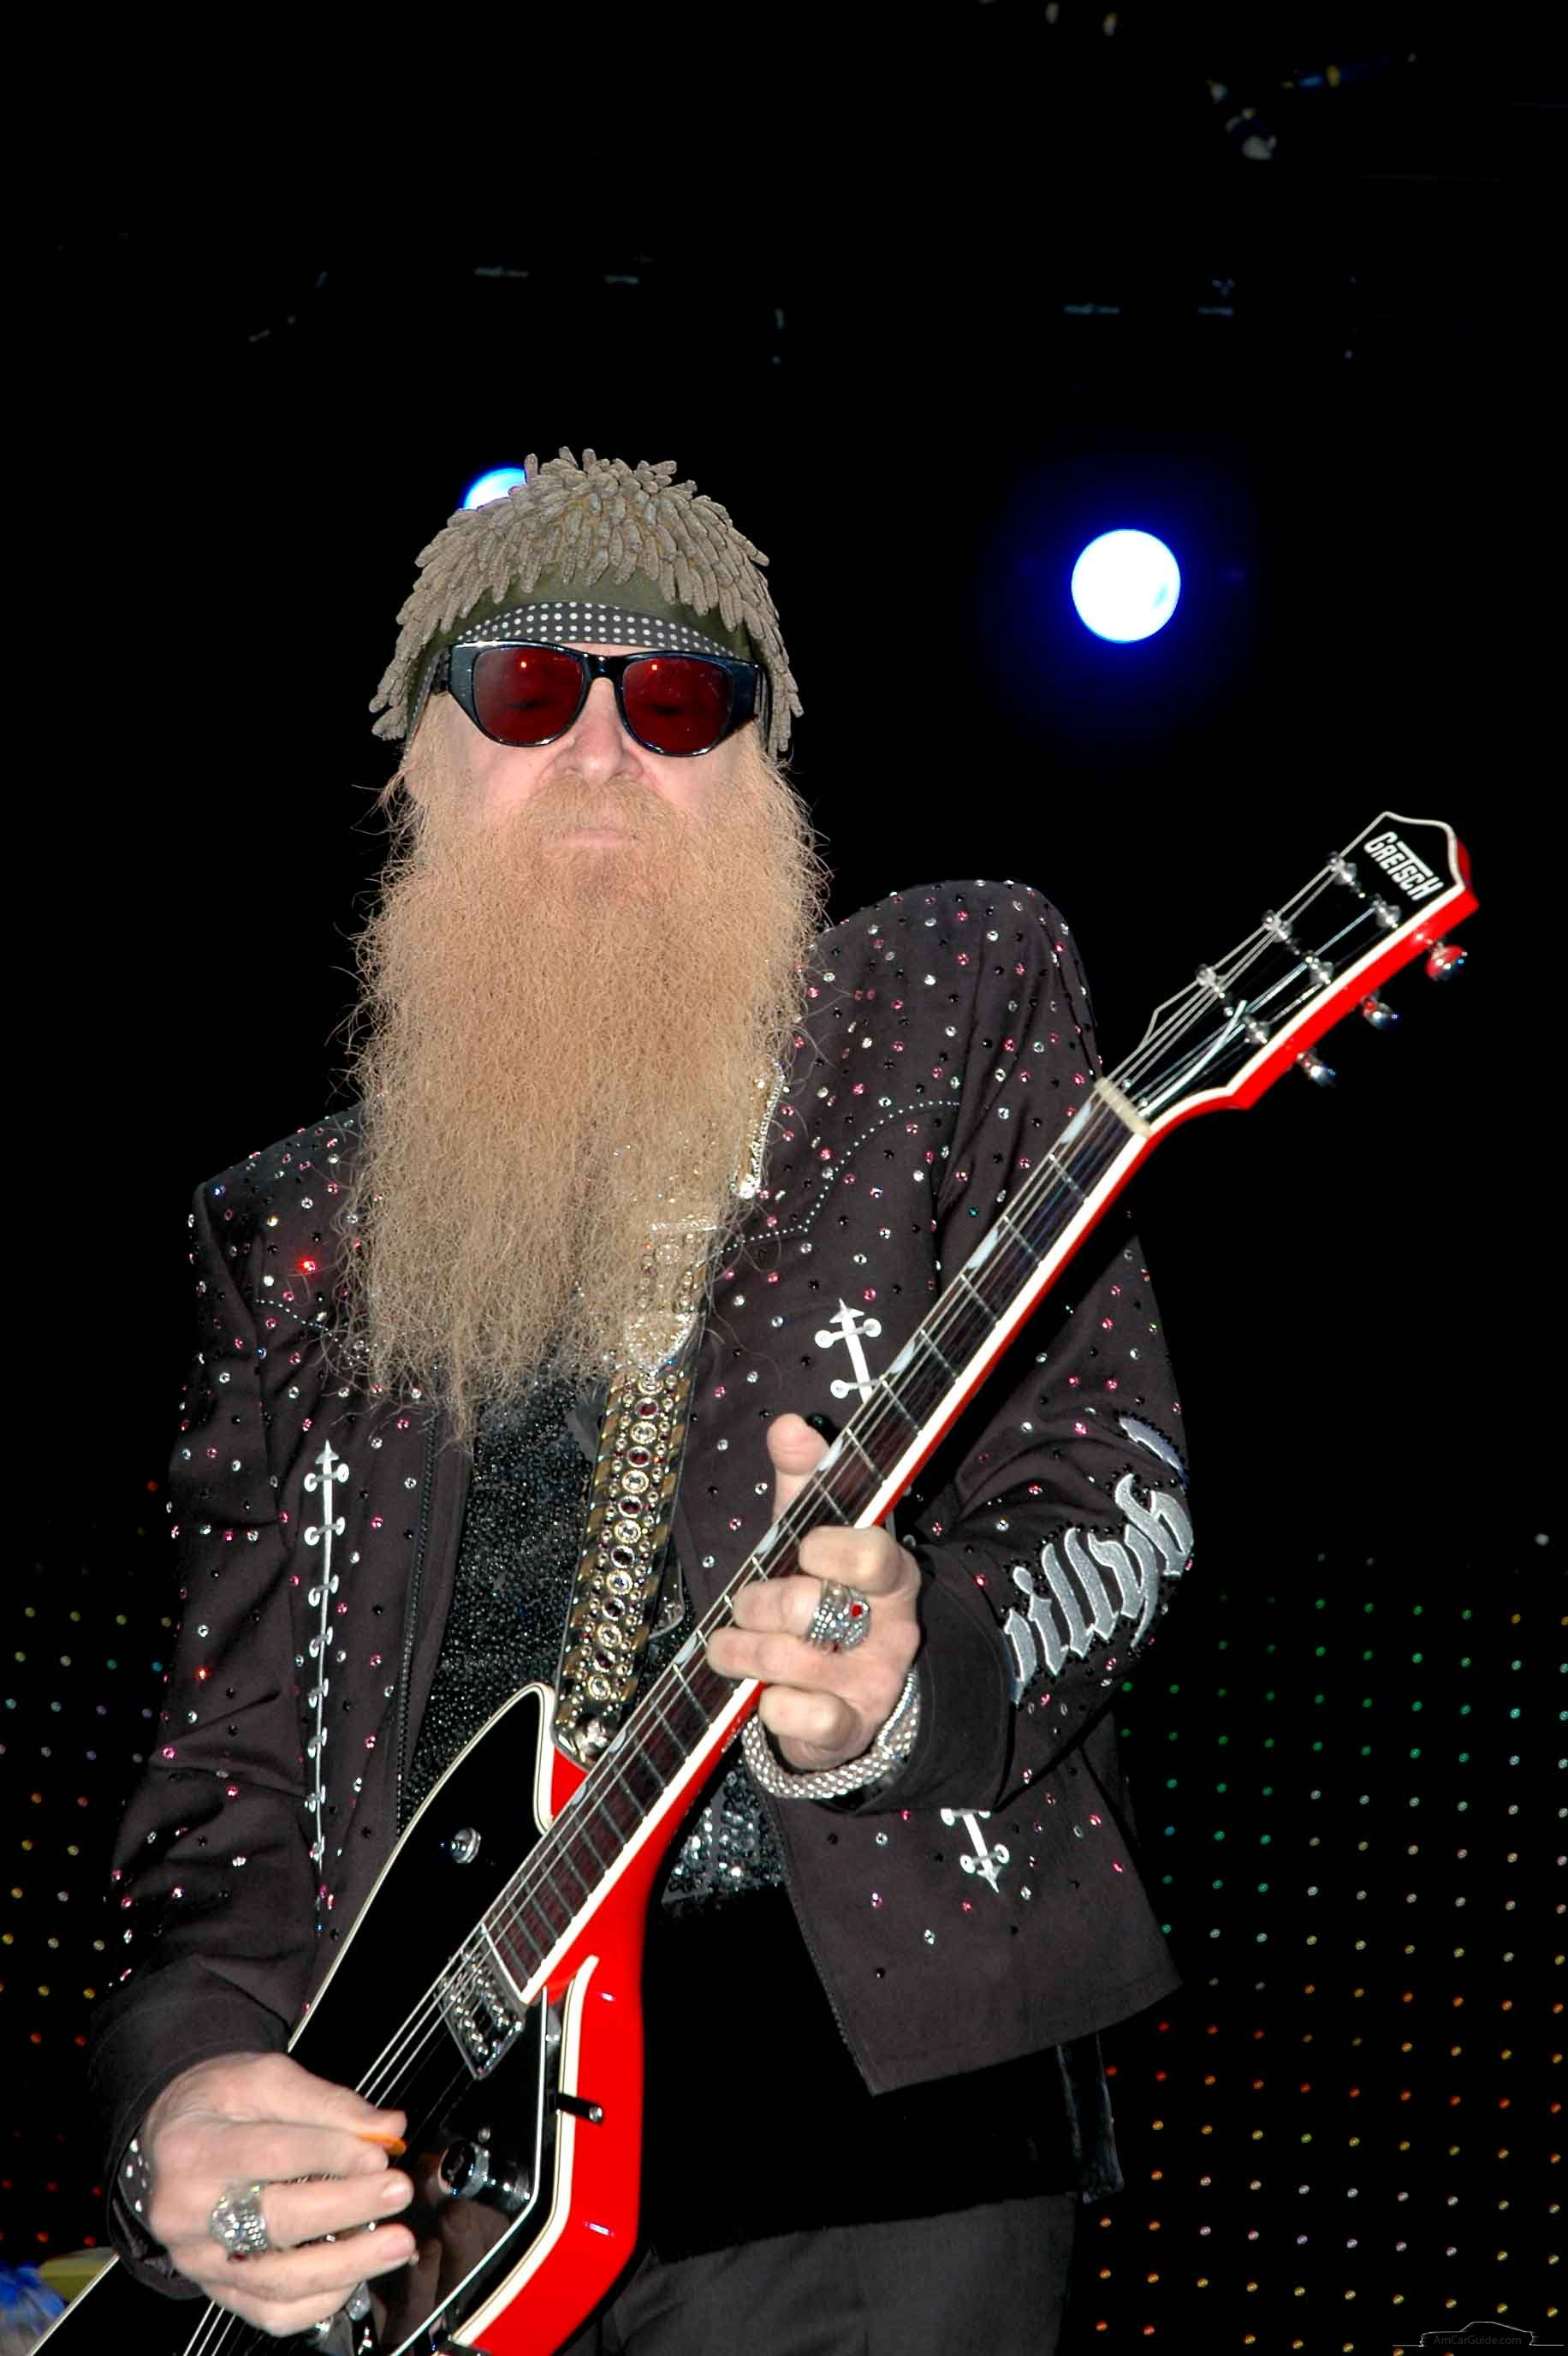 billy-gibbons-zztop.jpg